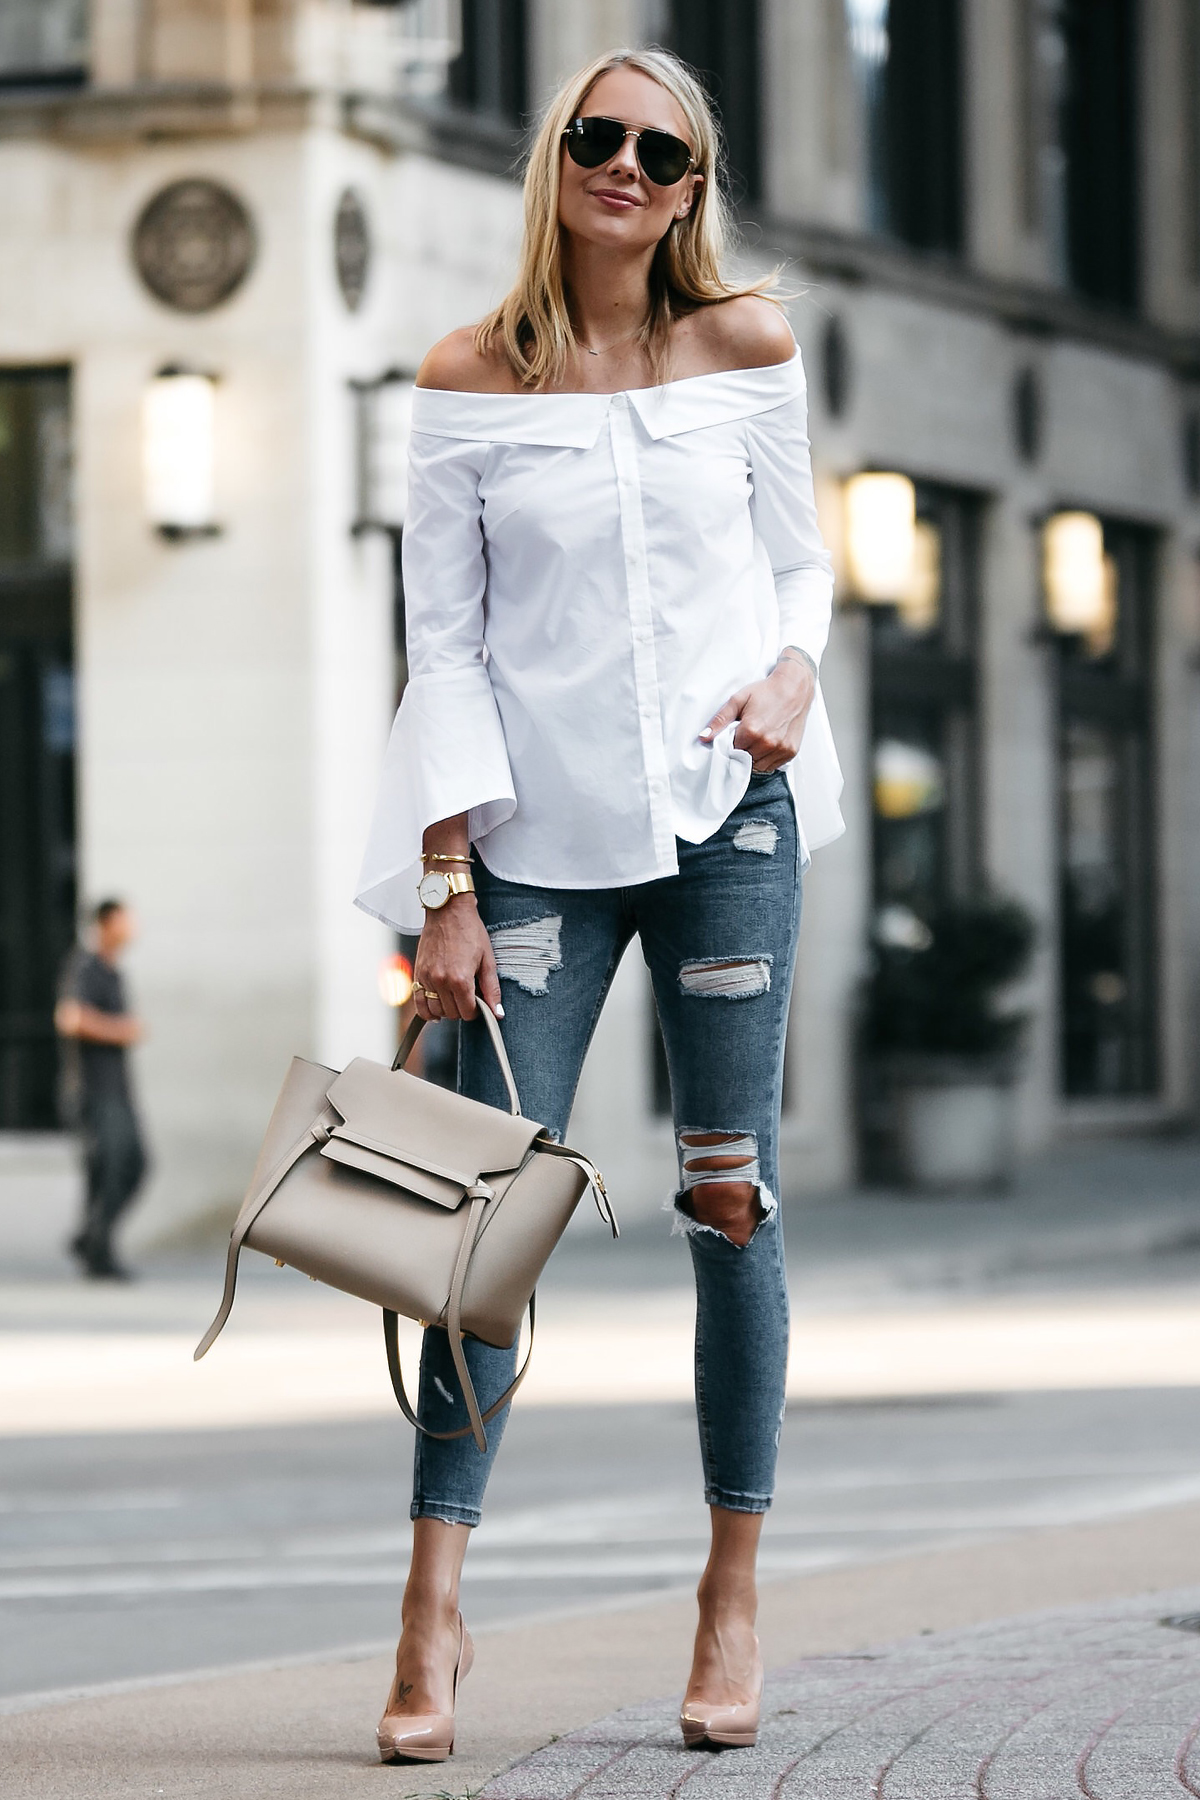 Blonde Woman Wearing Nordstrom Anniversary Sale White Bell-Sleeve off-the-shoulder Top Topshop Denim Ripped Skinny Jeans Outfit Christian Louboutin Nude Pumps Celine Belt Bag Celine Aviator Sunglasses Fashion Jackson Dallas Blogger Fashion Blogger Street Style